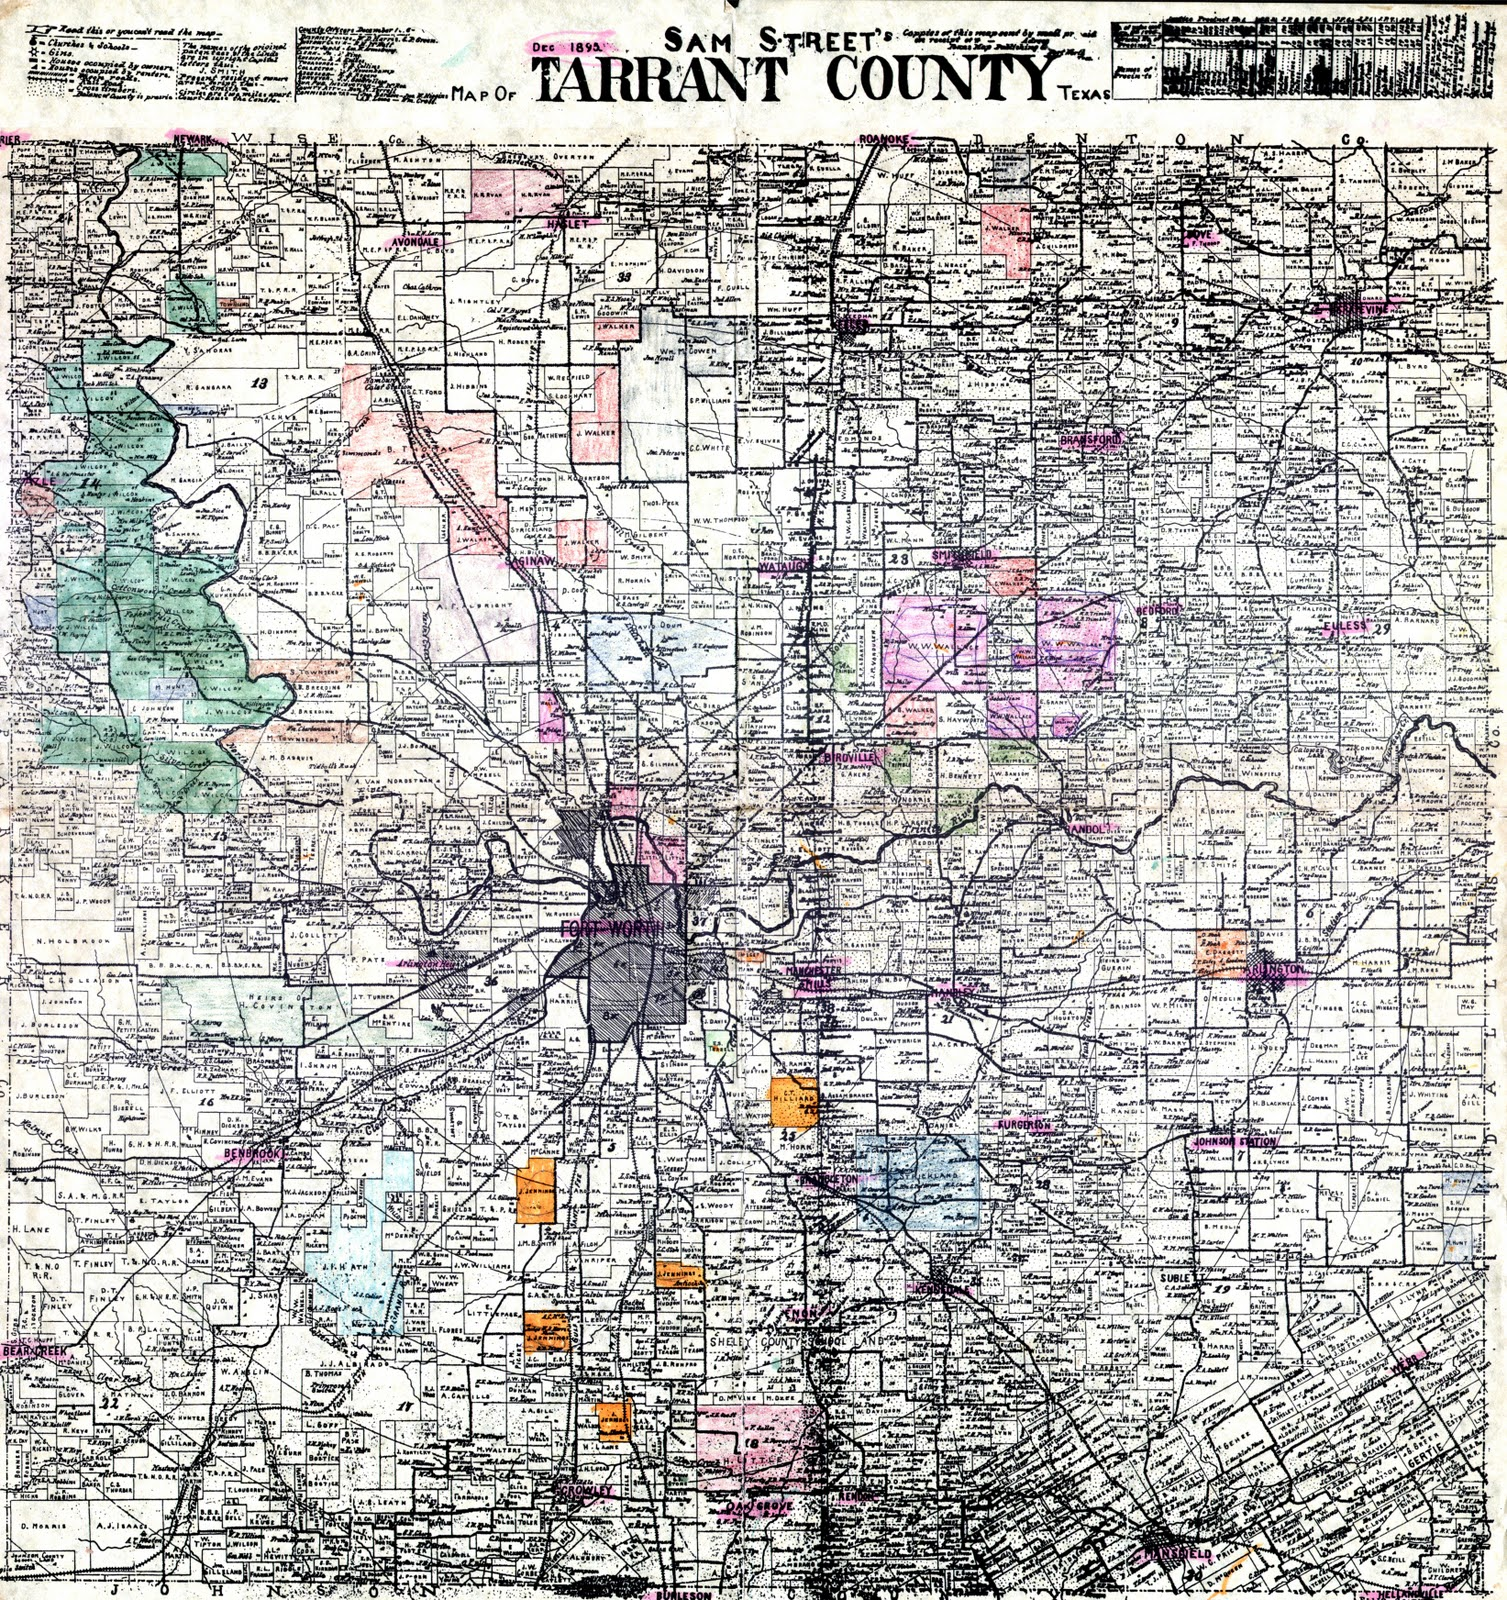 Broward County  FL 60  Wall Map Rail Mounted   Dolph Map LLC also Sam Street's map of Dallas County  Texas  1900 further San Jose   Santa Clara County Cities Street Map Book  3rd Ed also  besides California Maps Catalogue   GM Johnson Maps further Milwaukee Map   Custom Maps additionally Akron   Summit County  Ohio Street Map   GM Johnson Maps in addition Lower Weber County Street Map   Ogden UT US • mappery likewise Pages   County Map besides Neighborhood Street maps  Queens County  NY besides Dane County Street Atlas moreover WorkingMaps   ZIP Code Maps additionally The Fort Worth Gazette  Sam Street's Great 1895 Tarrant County Map likewise Maps together with Palm Beach County  Florida  1987 additionally Bloomington Indiana with Monroe County city street map  Bloomington. on county street maps